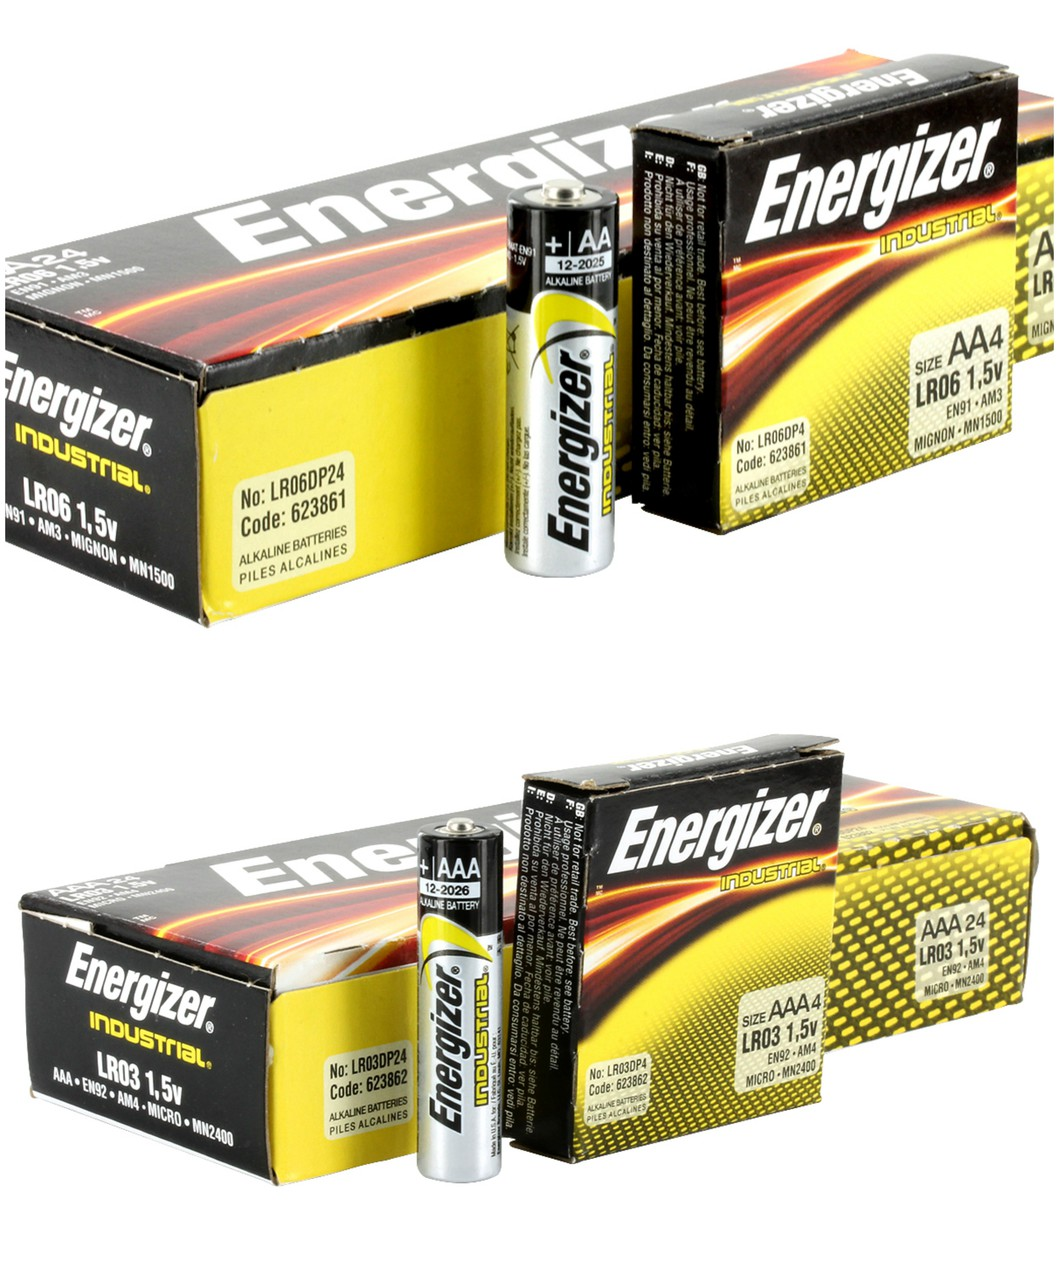 48 Piece Combo Pack - Energizer Industrial Alkaline 24 AAA + 24 AA - FREE SHIPPING!